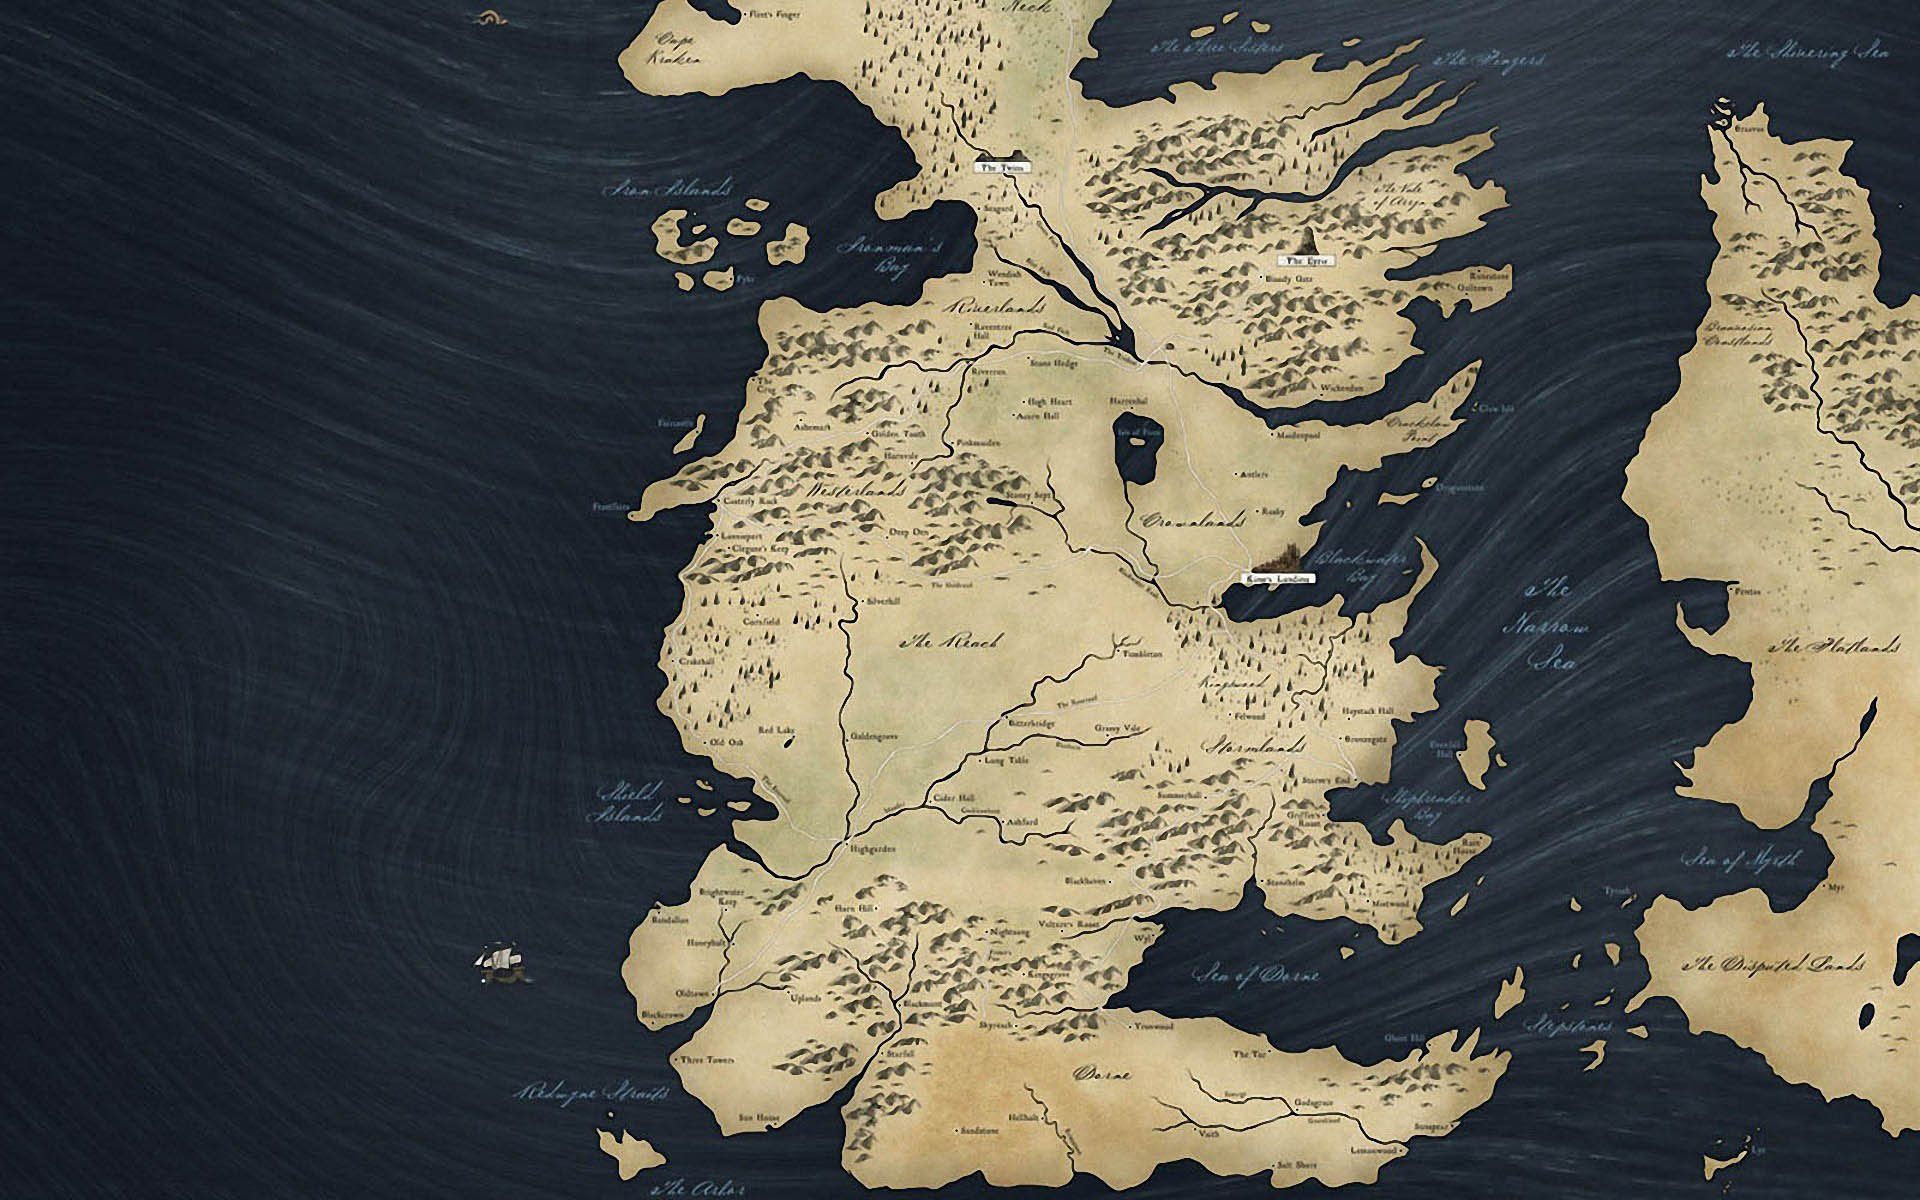 Game Of Thrones Map Wallpaper Wallpapersafari